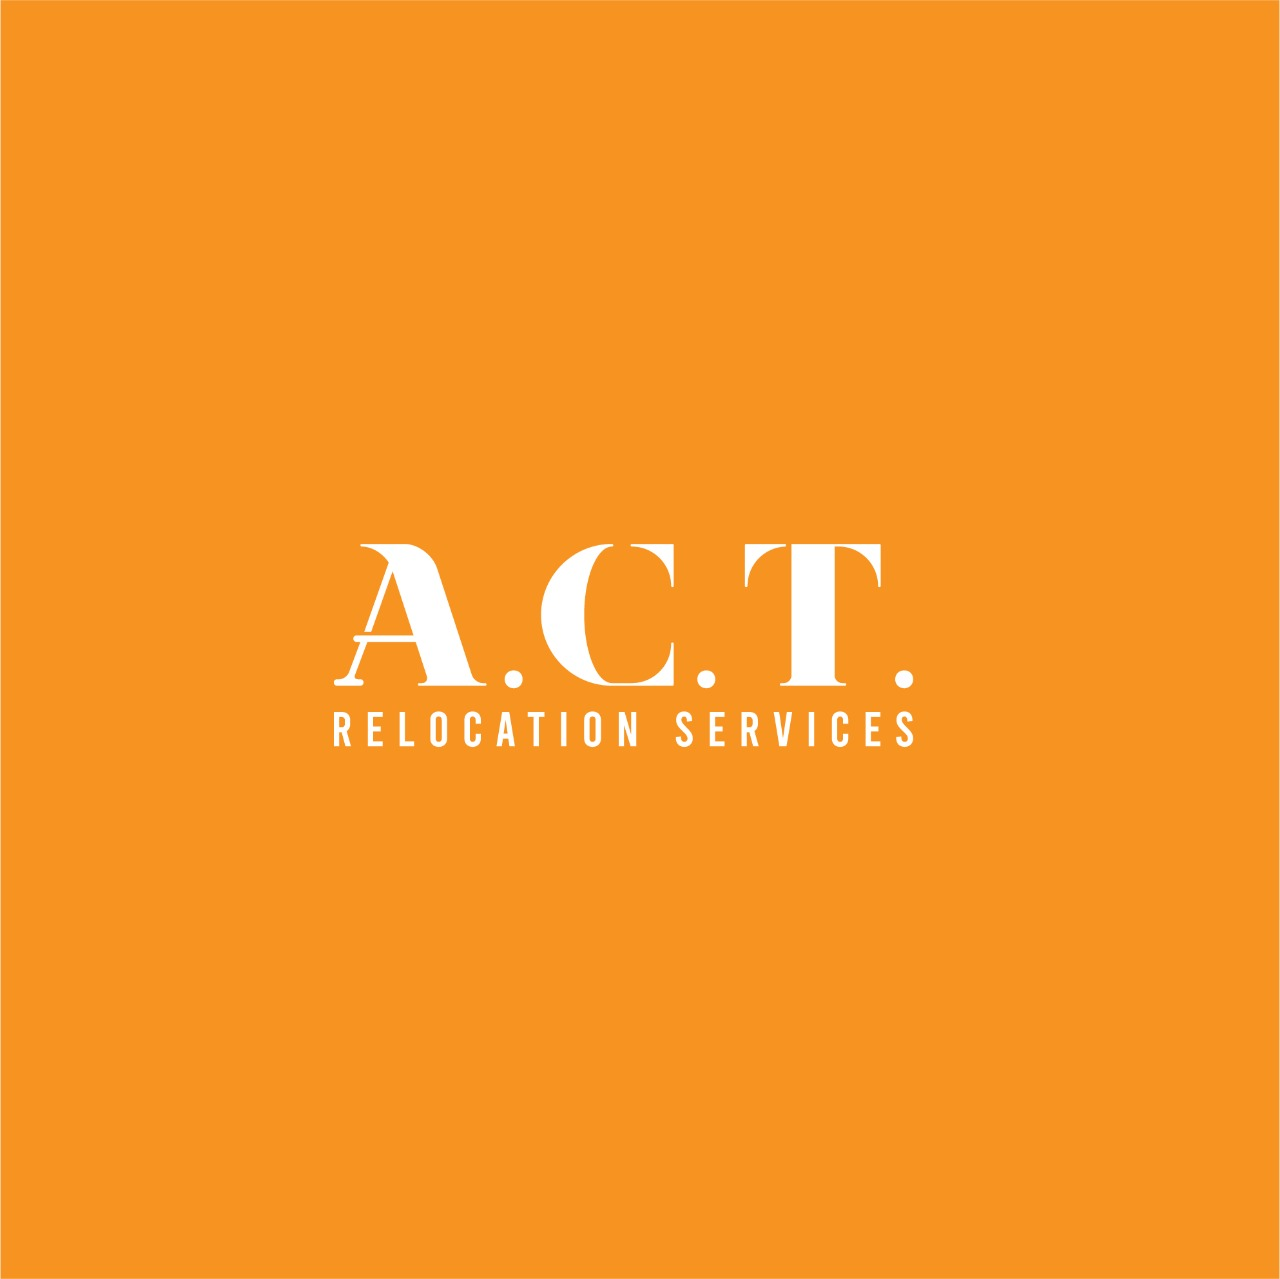 Reubicación ACT Relocation Services